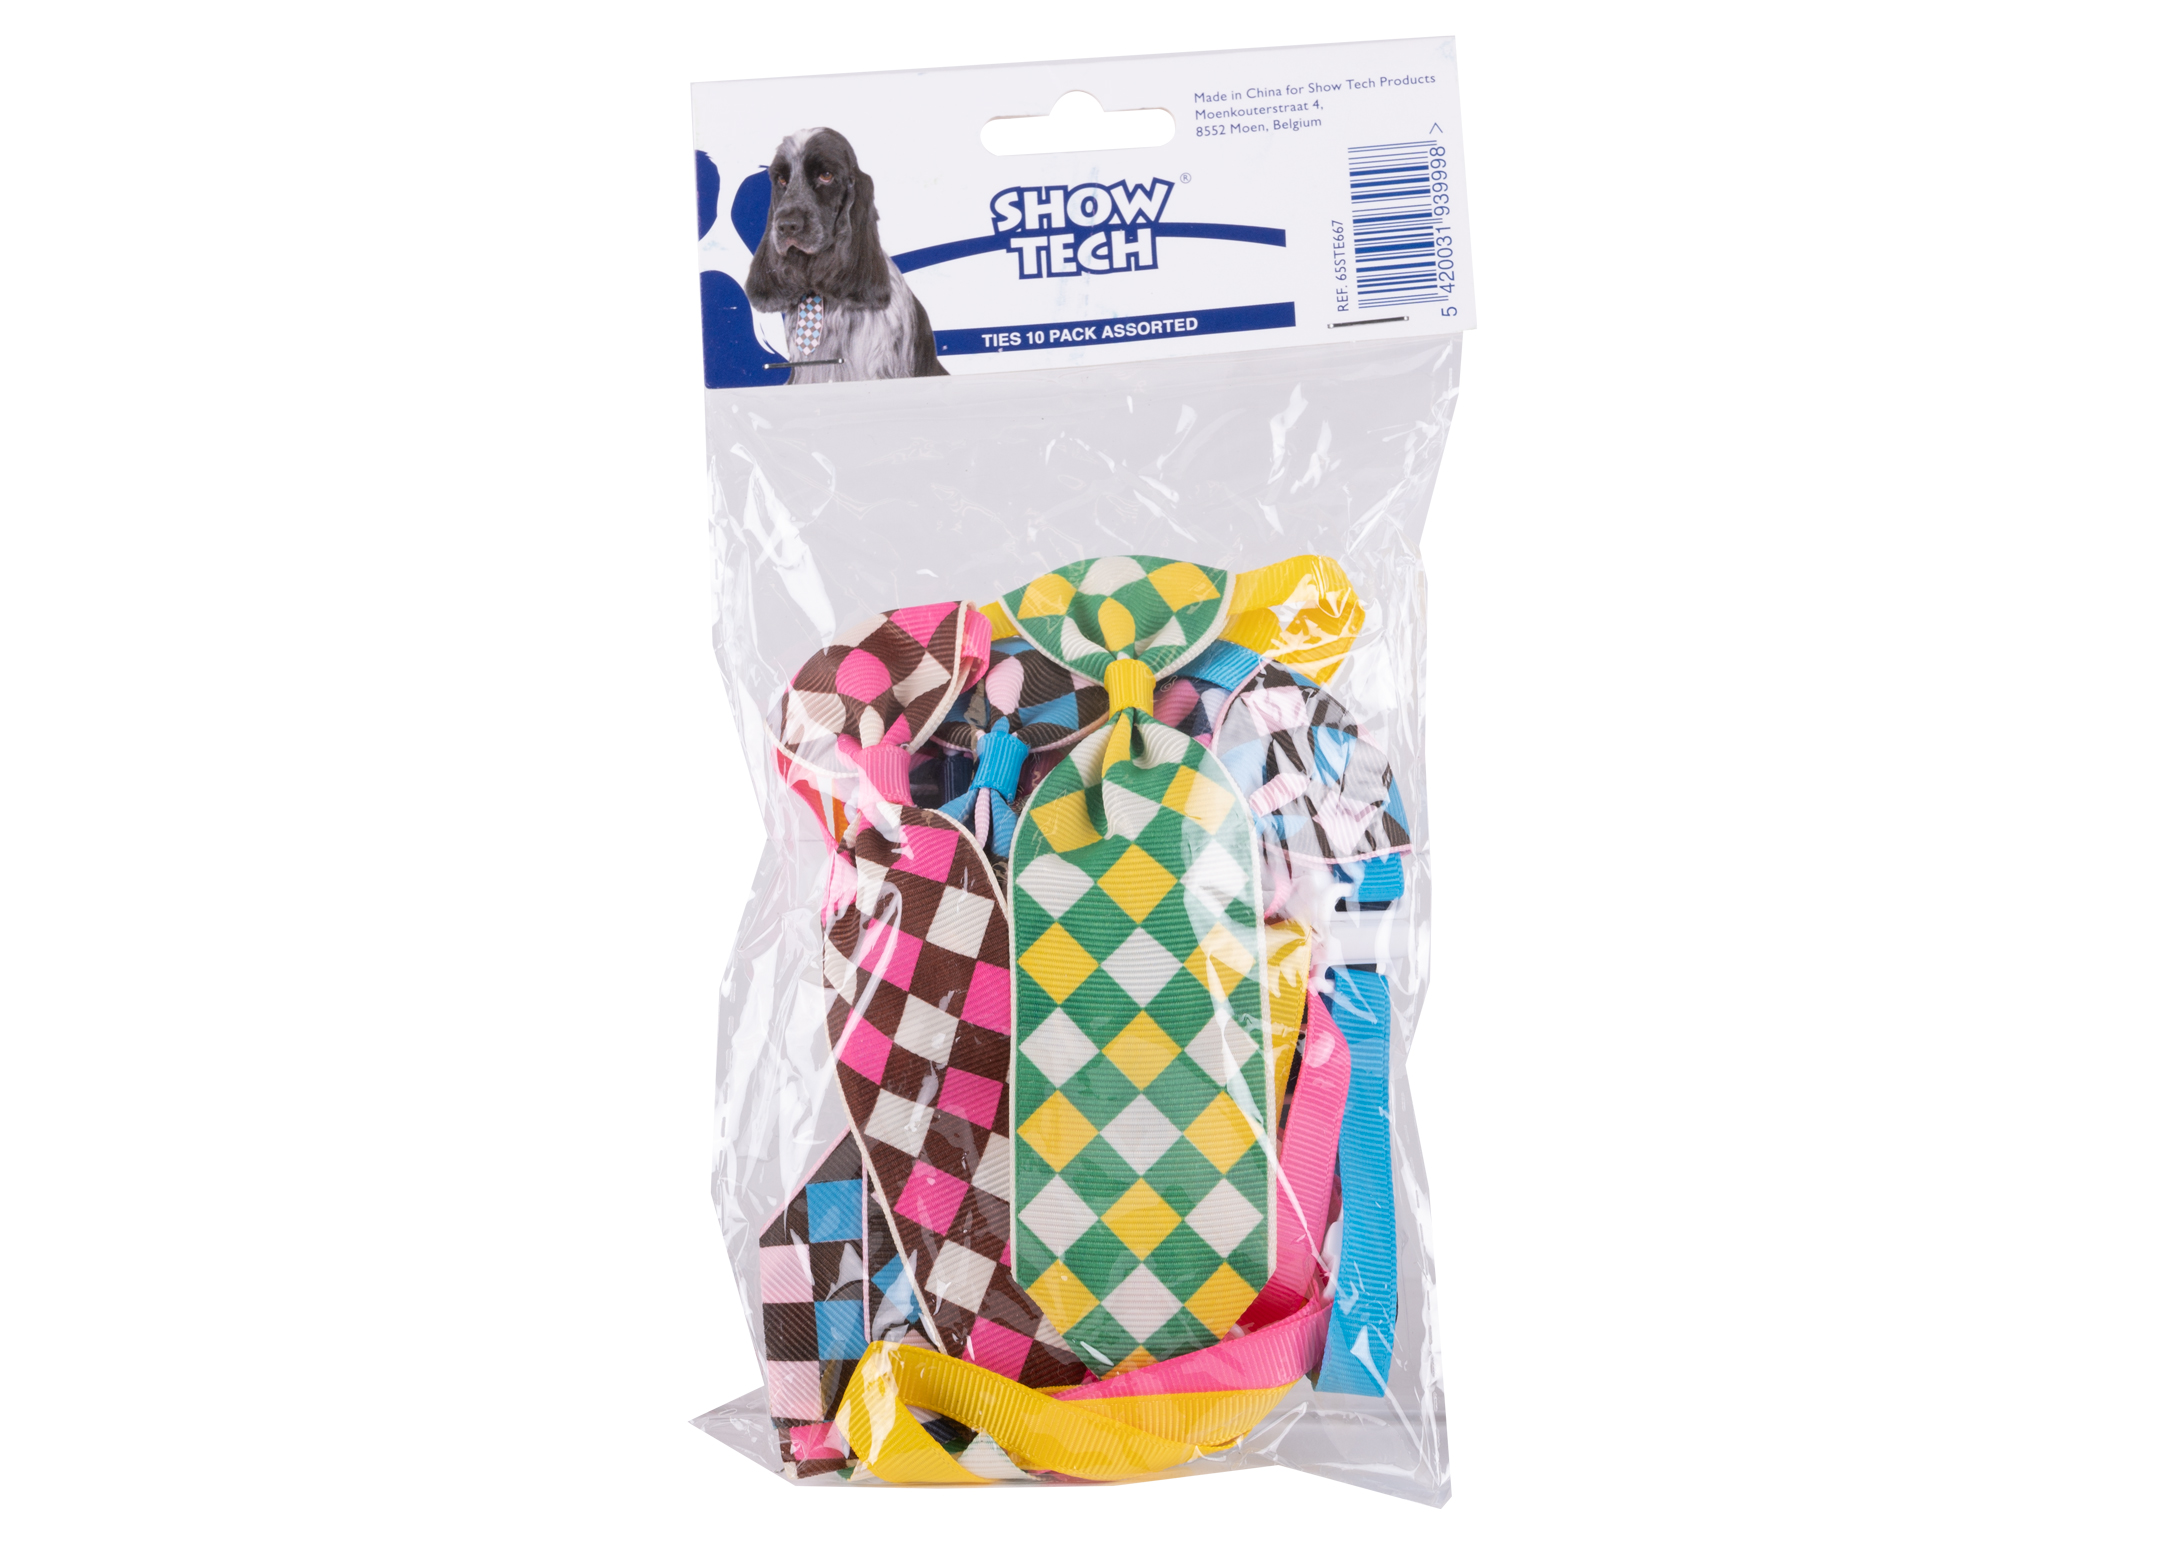 Show Tech Check Tie Canine Costume Ties 10-pack Assorted